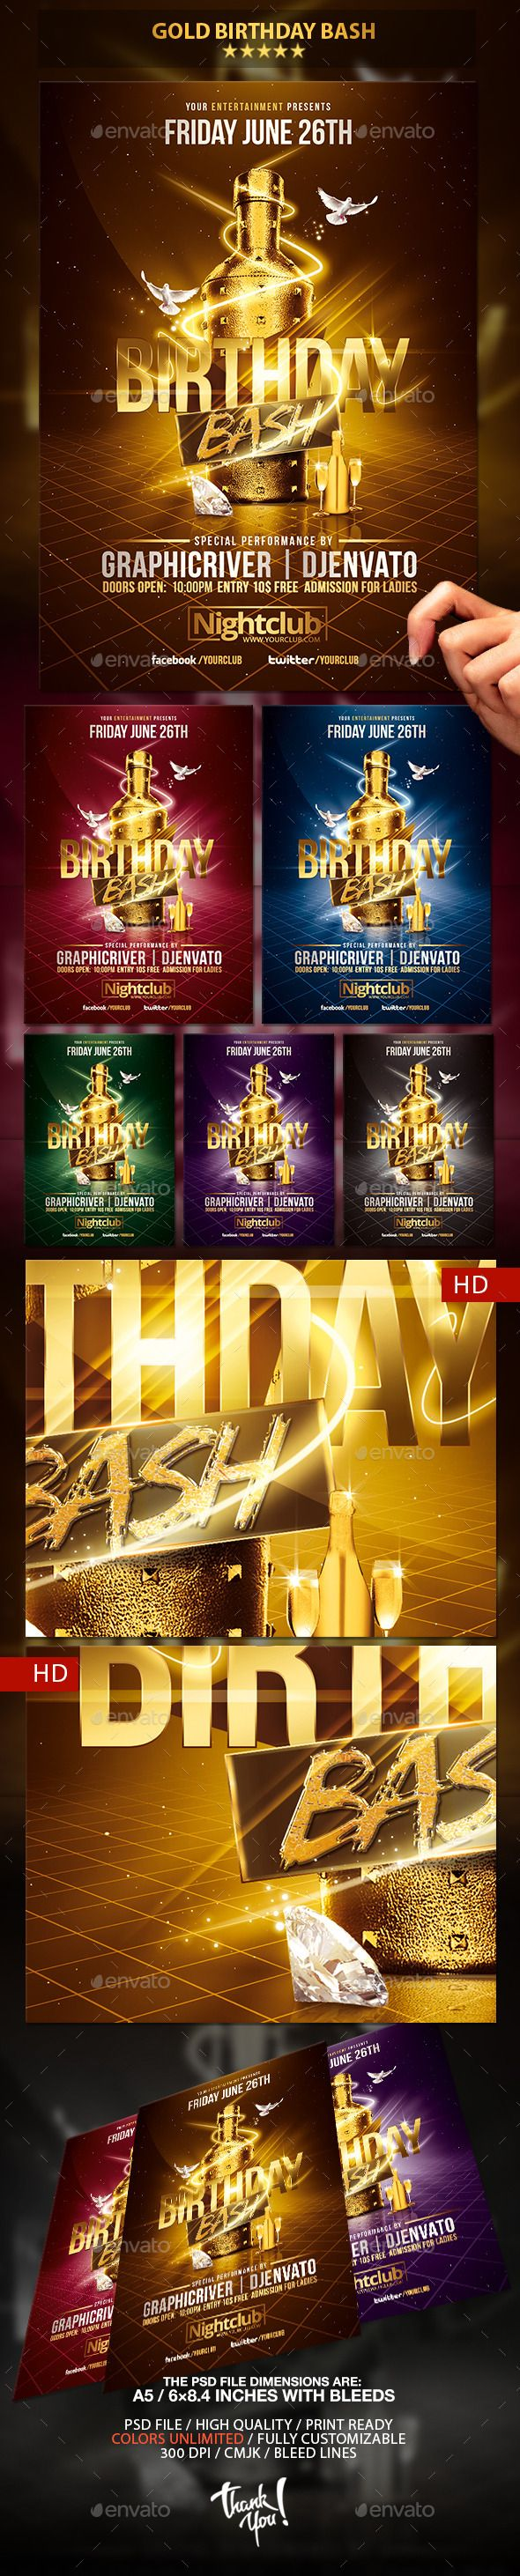 Gold Birthday Bash  Psd Flyer Template  Psd Flyer Templates